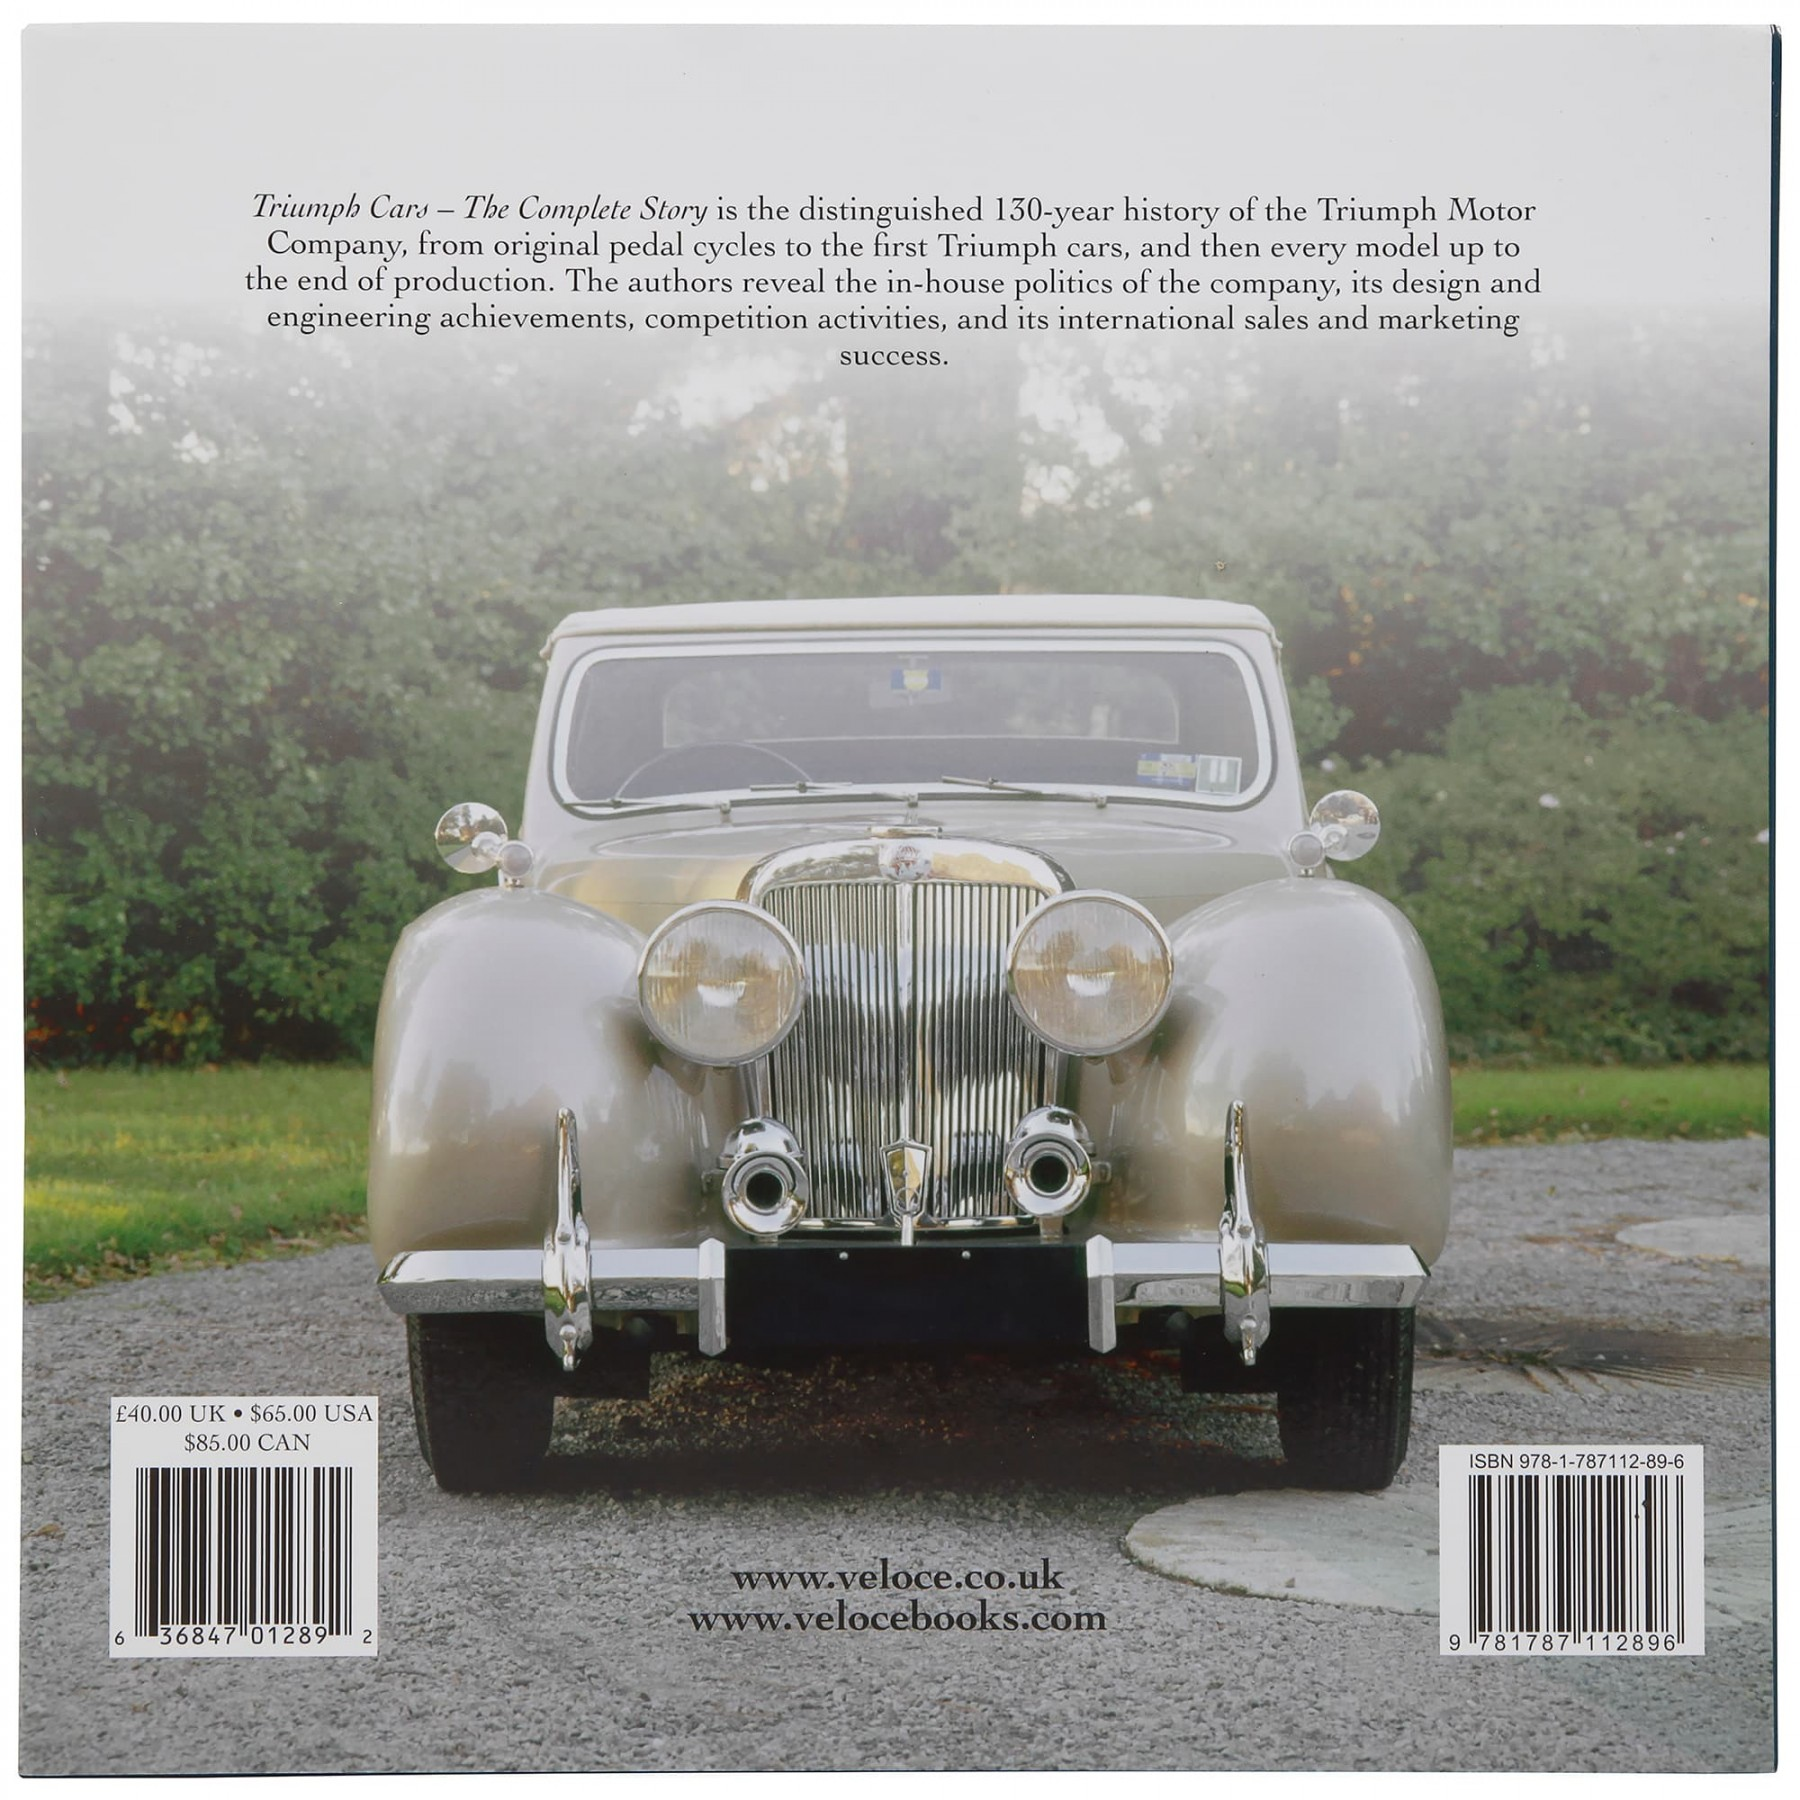 213-385 Book: Triumph Cars - The Complete Story | Moss Motors